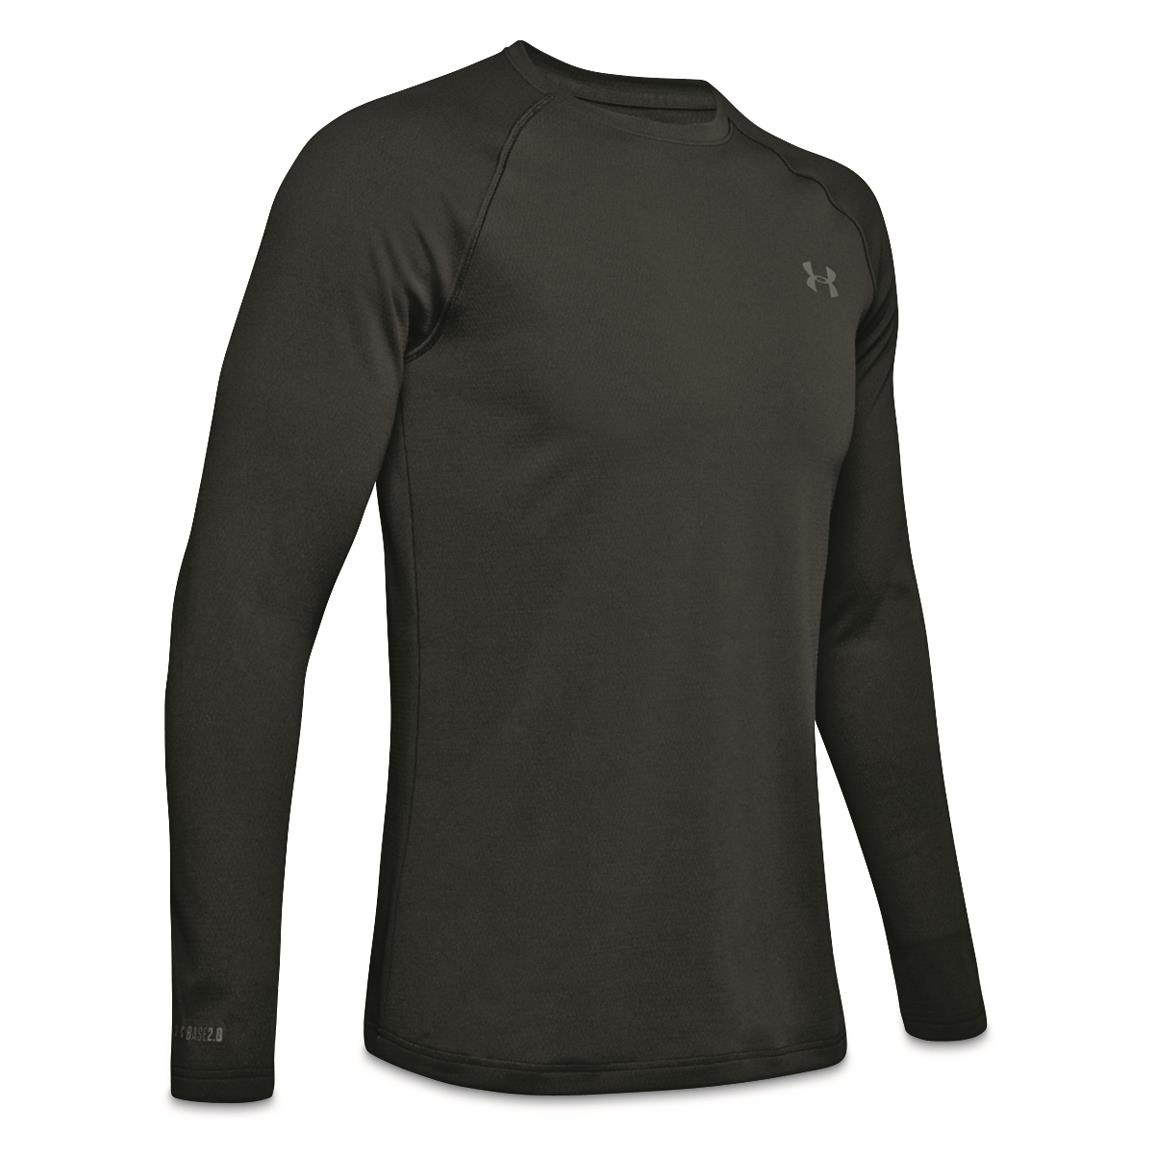 Under Armour Men's Base 2.0 Base Layer Crew Top, Black/pitch Gray